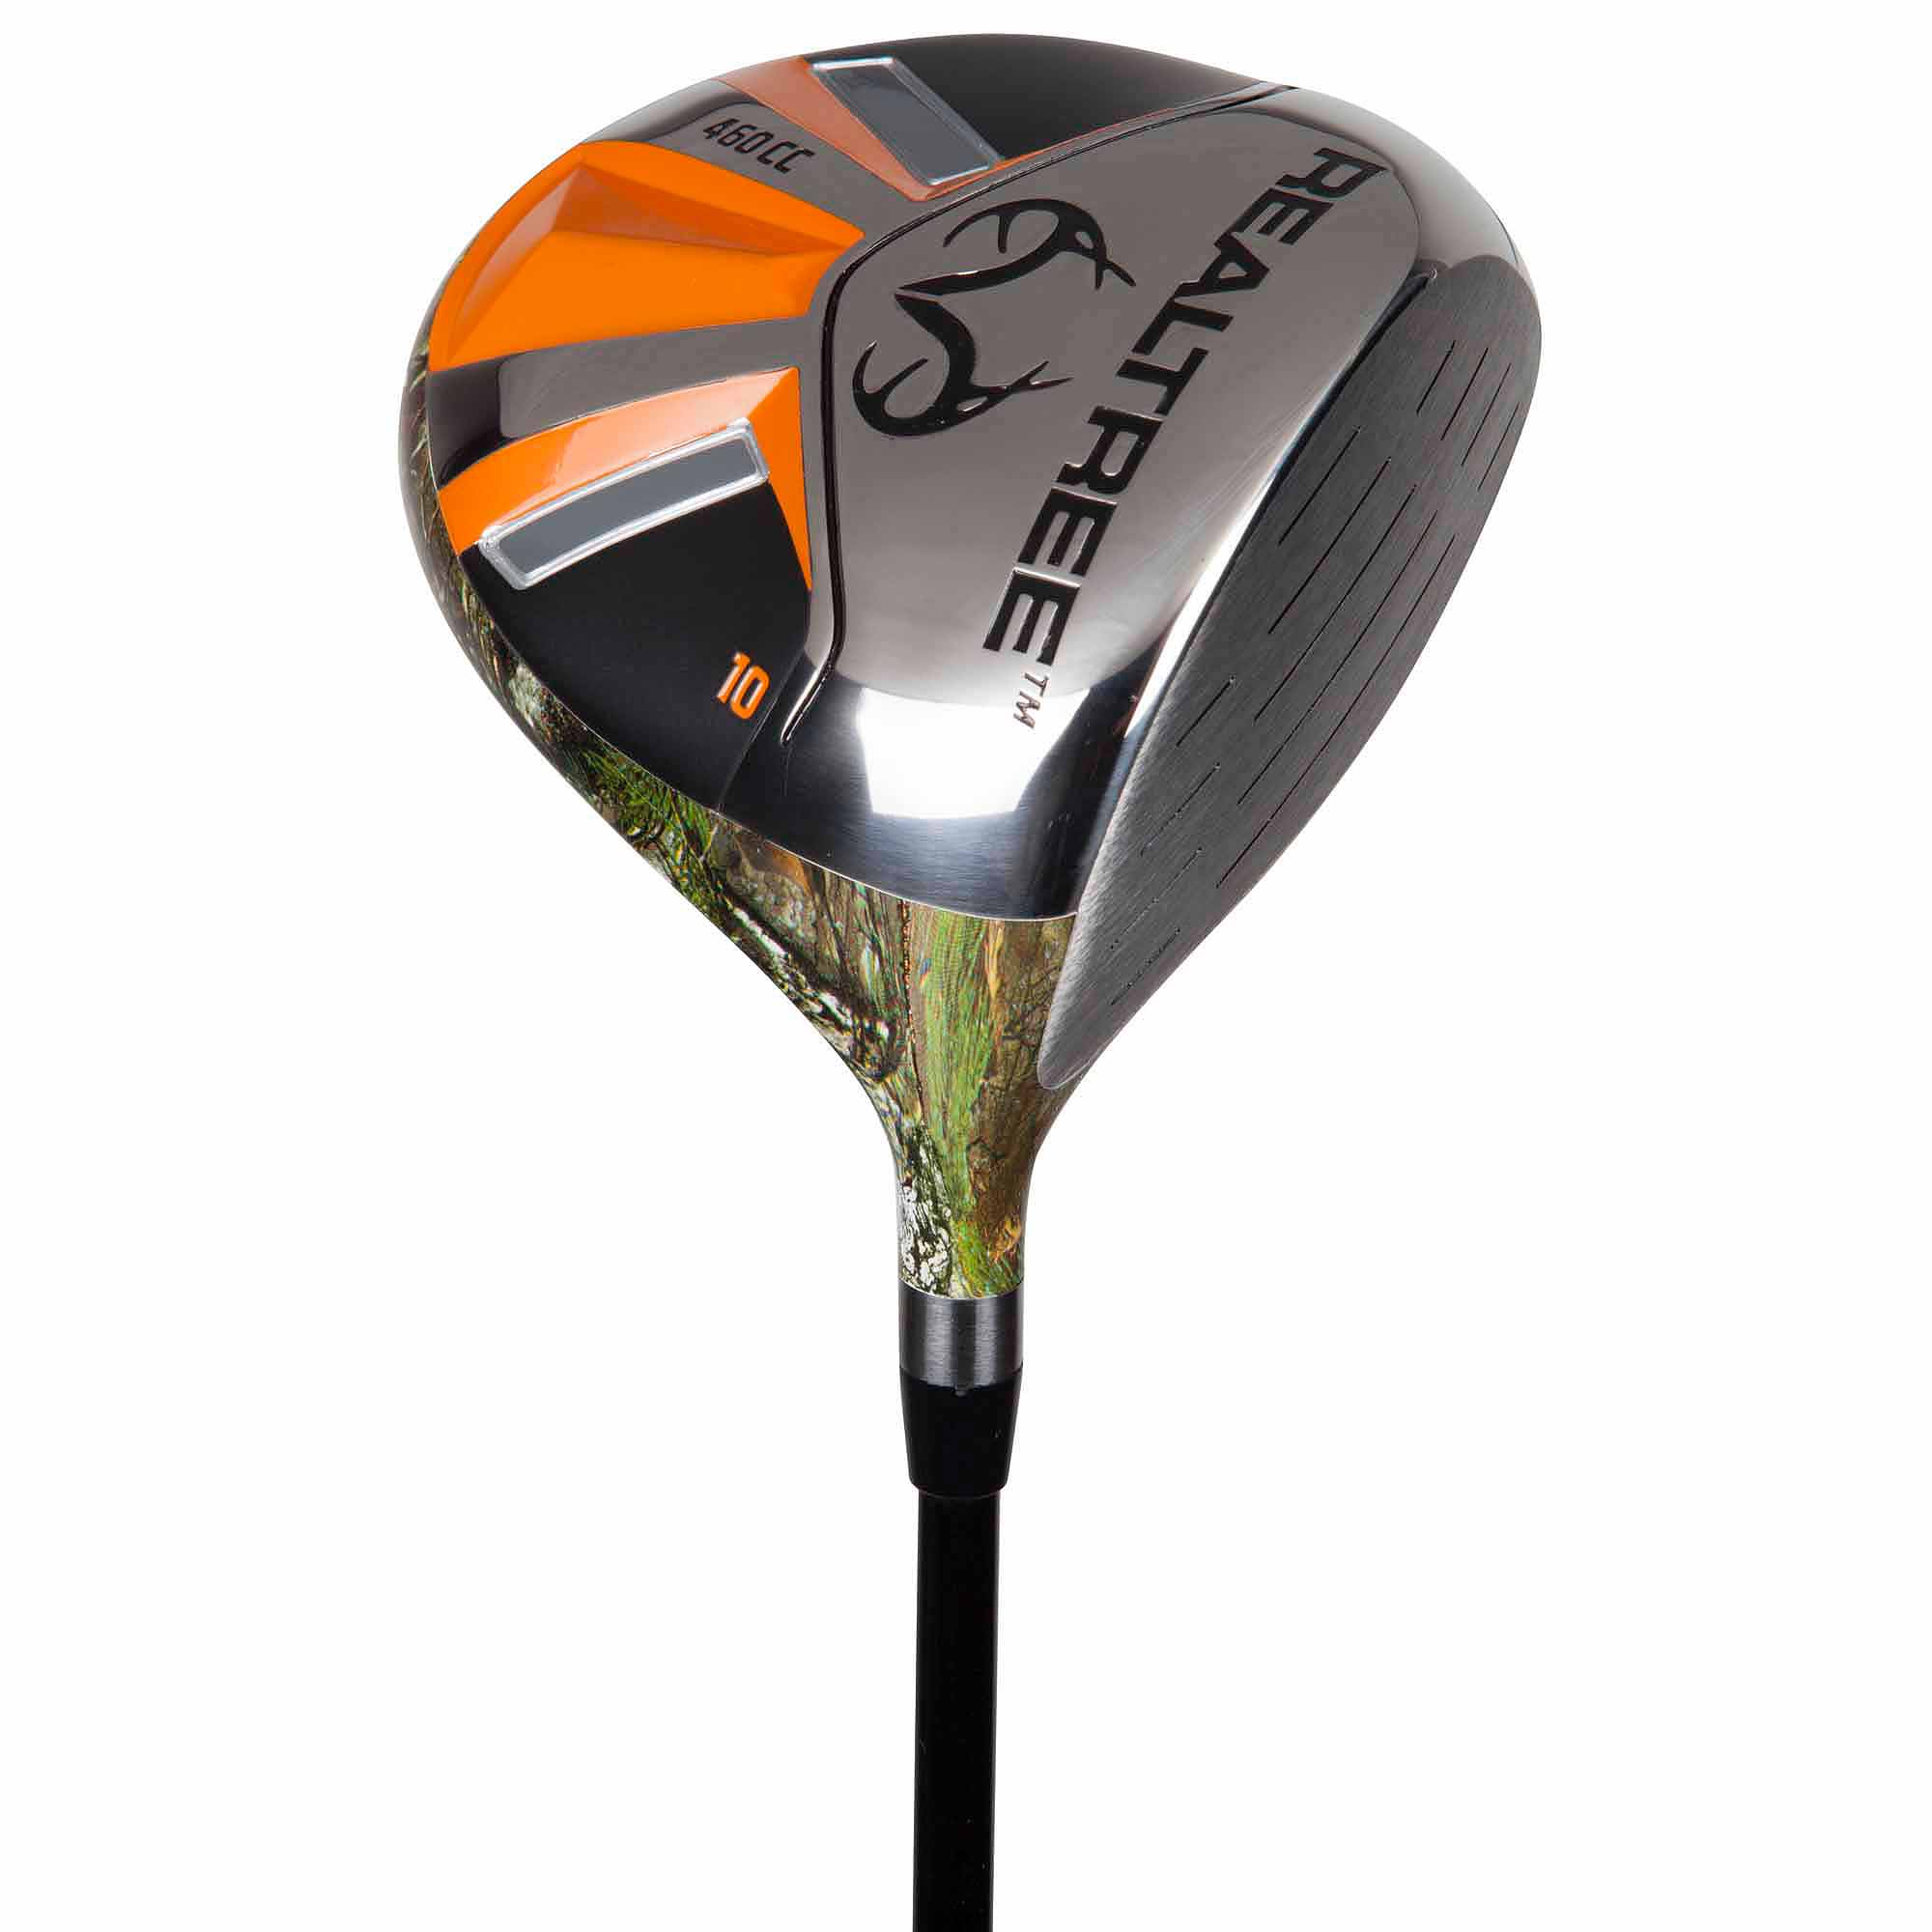 Pinemeadow Golf Real Tree Men's Driver, Black/Orange/Xtra